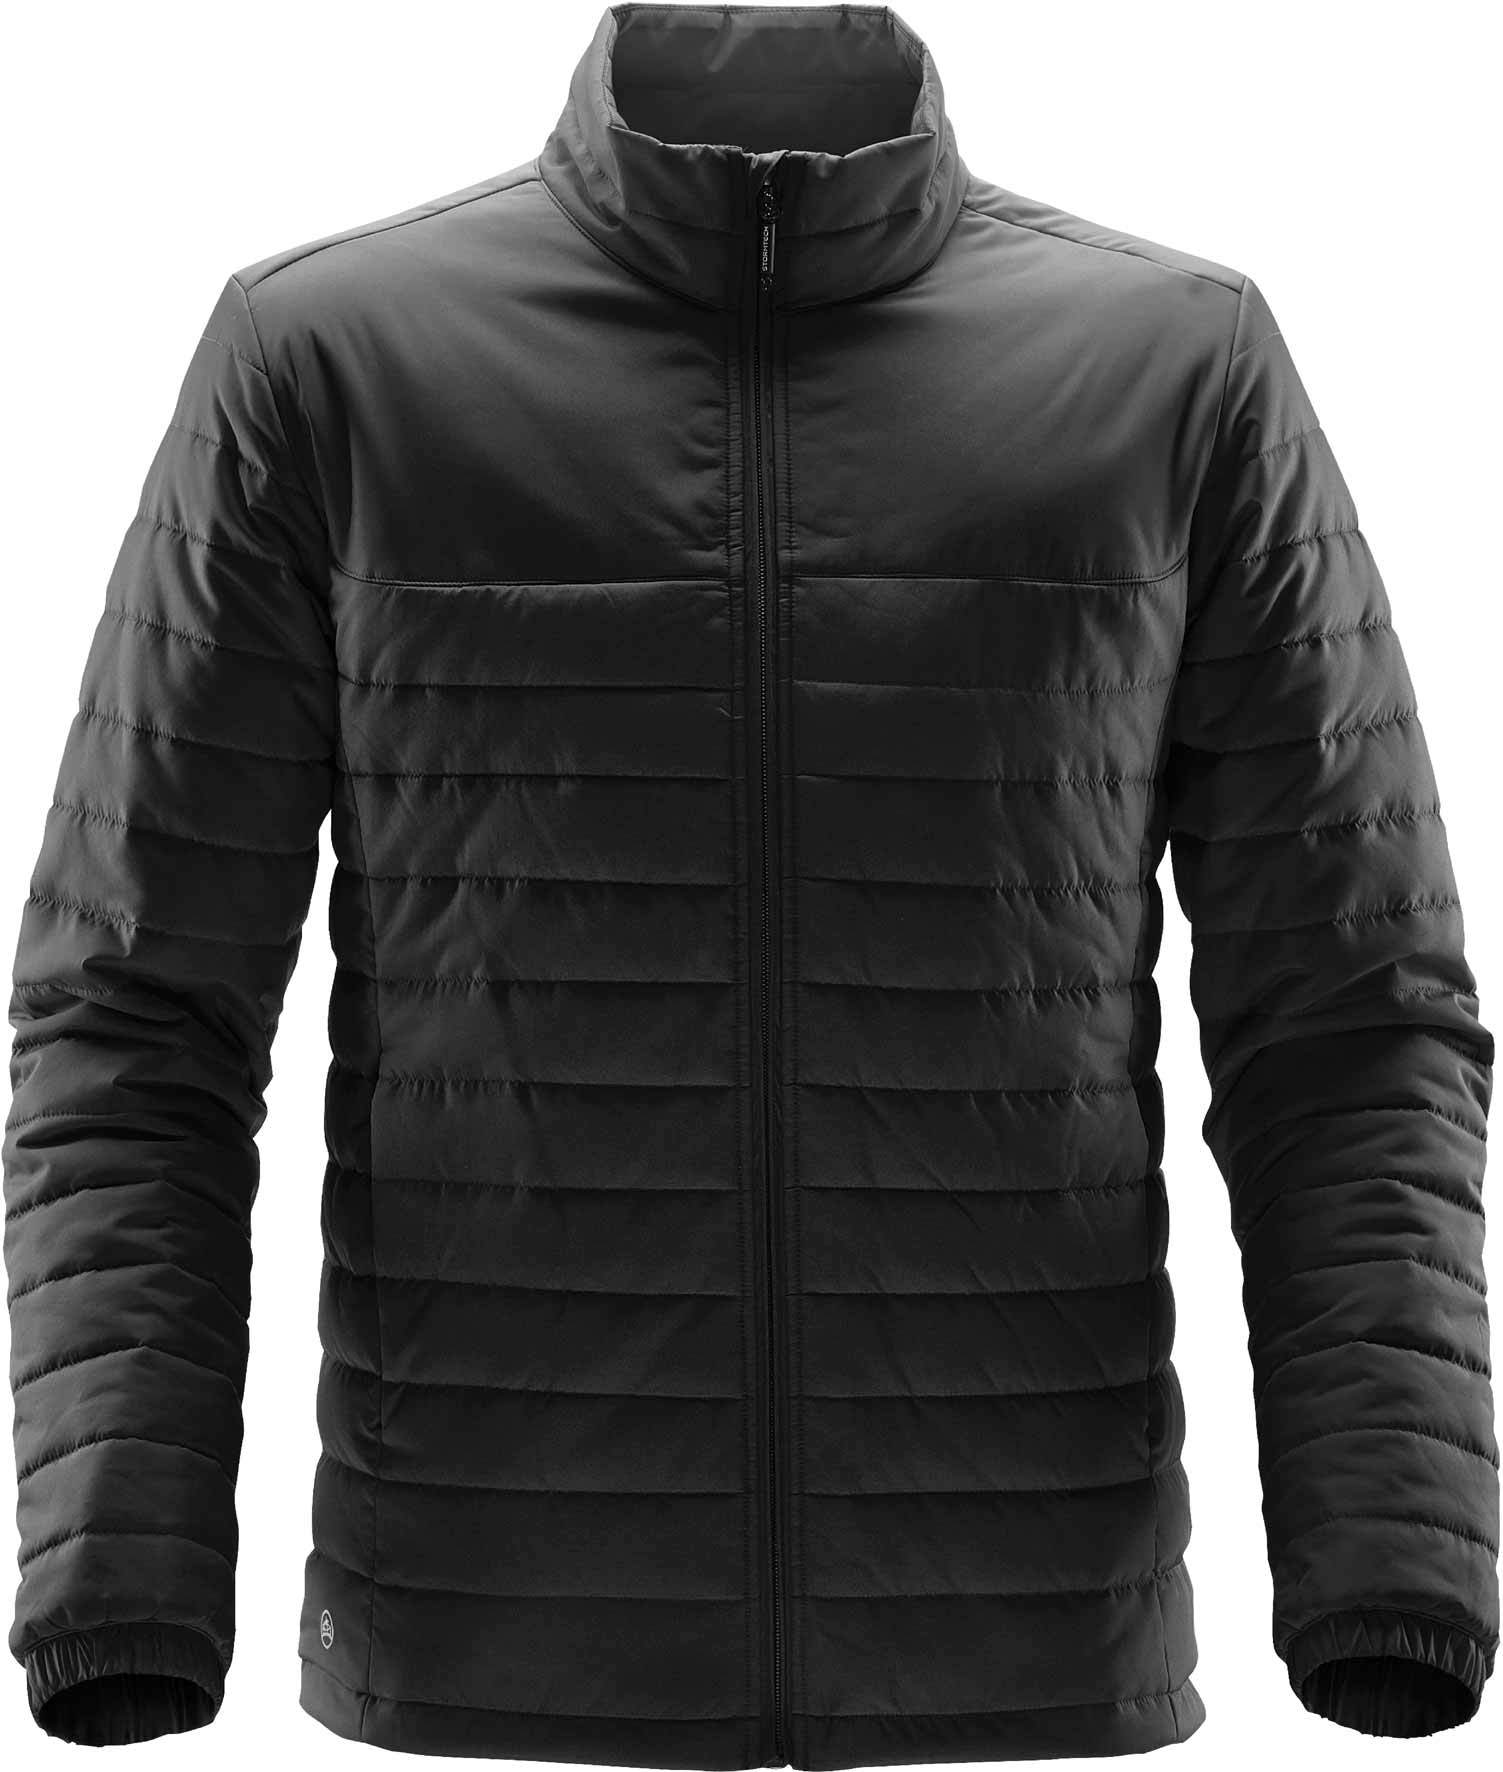 Stormtech Nautilus Quilted QX-1 Jacket - Wirral Workwear